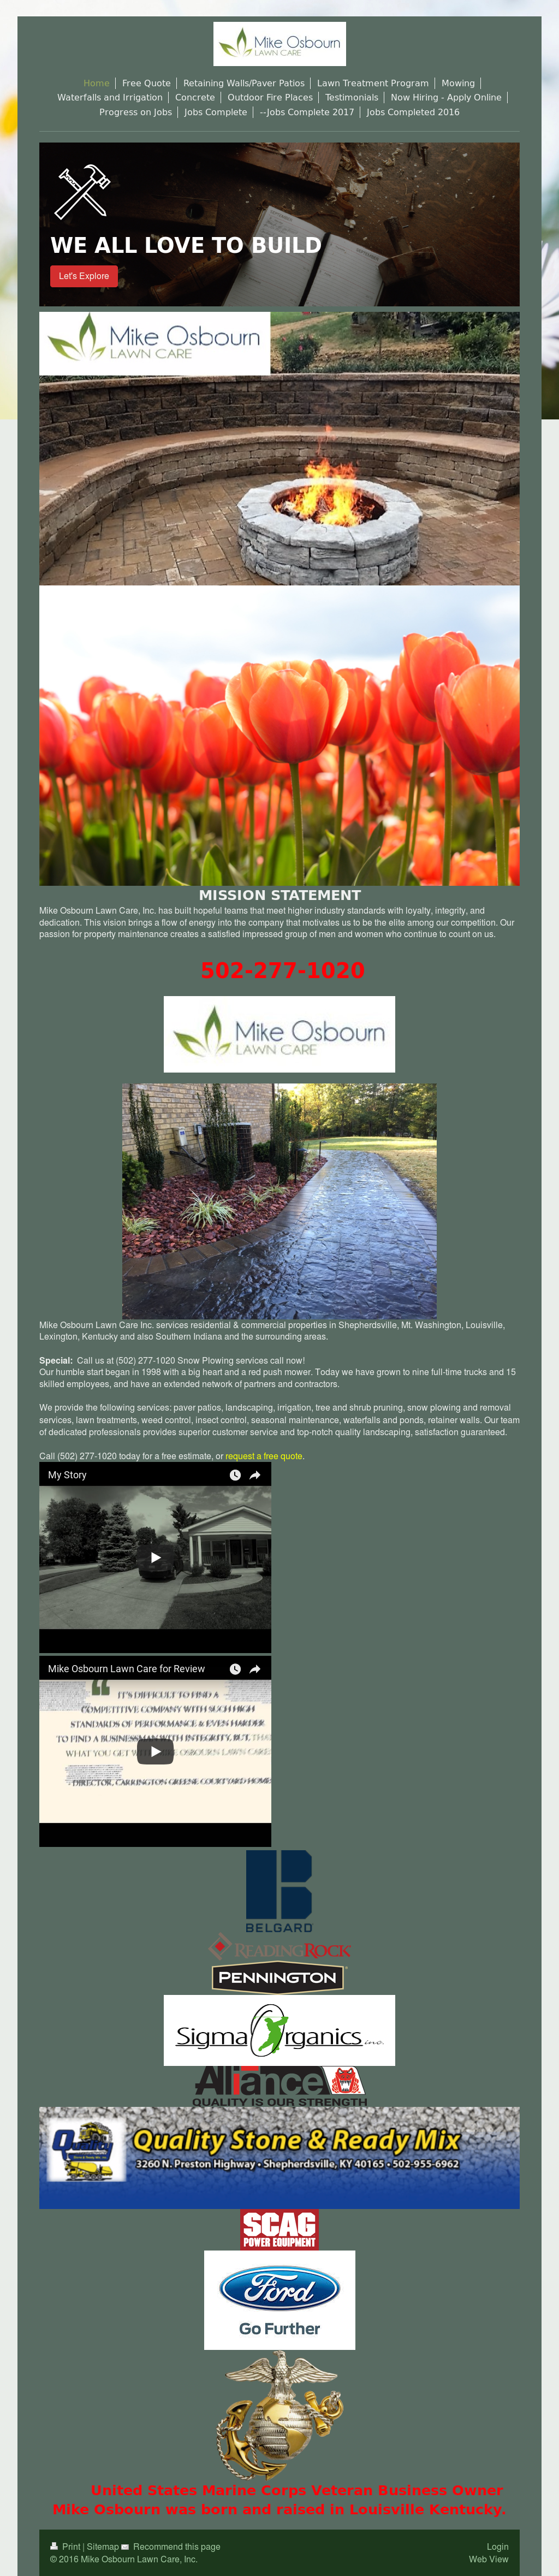 Mike Osbourn Lawn Care S Website Screenshot On Mar 2018